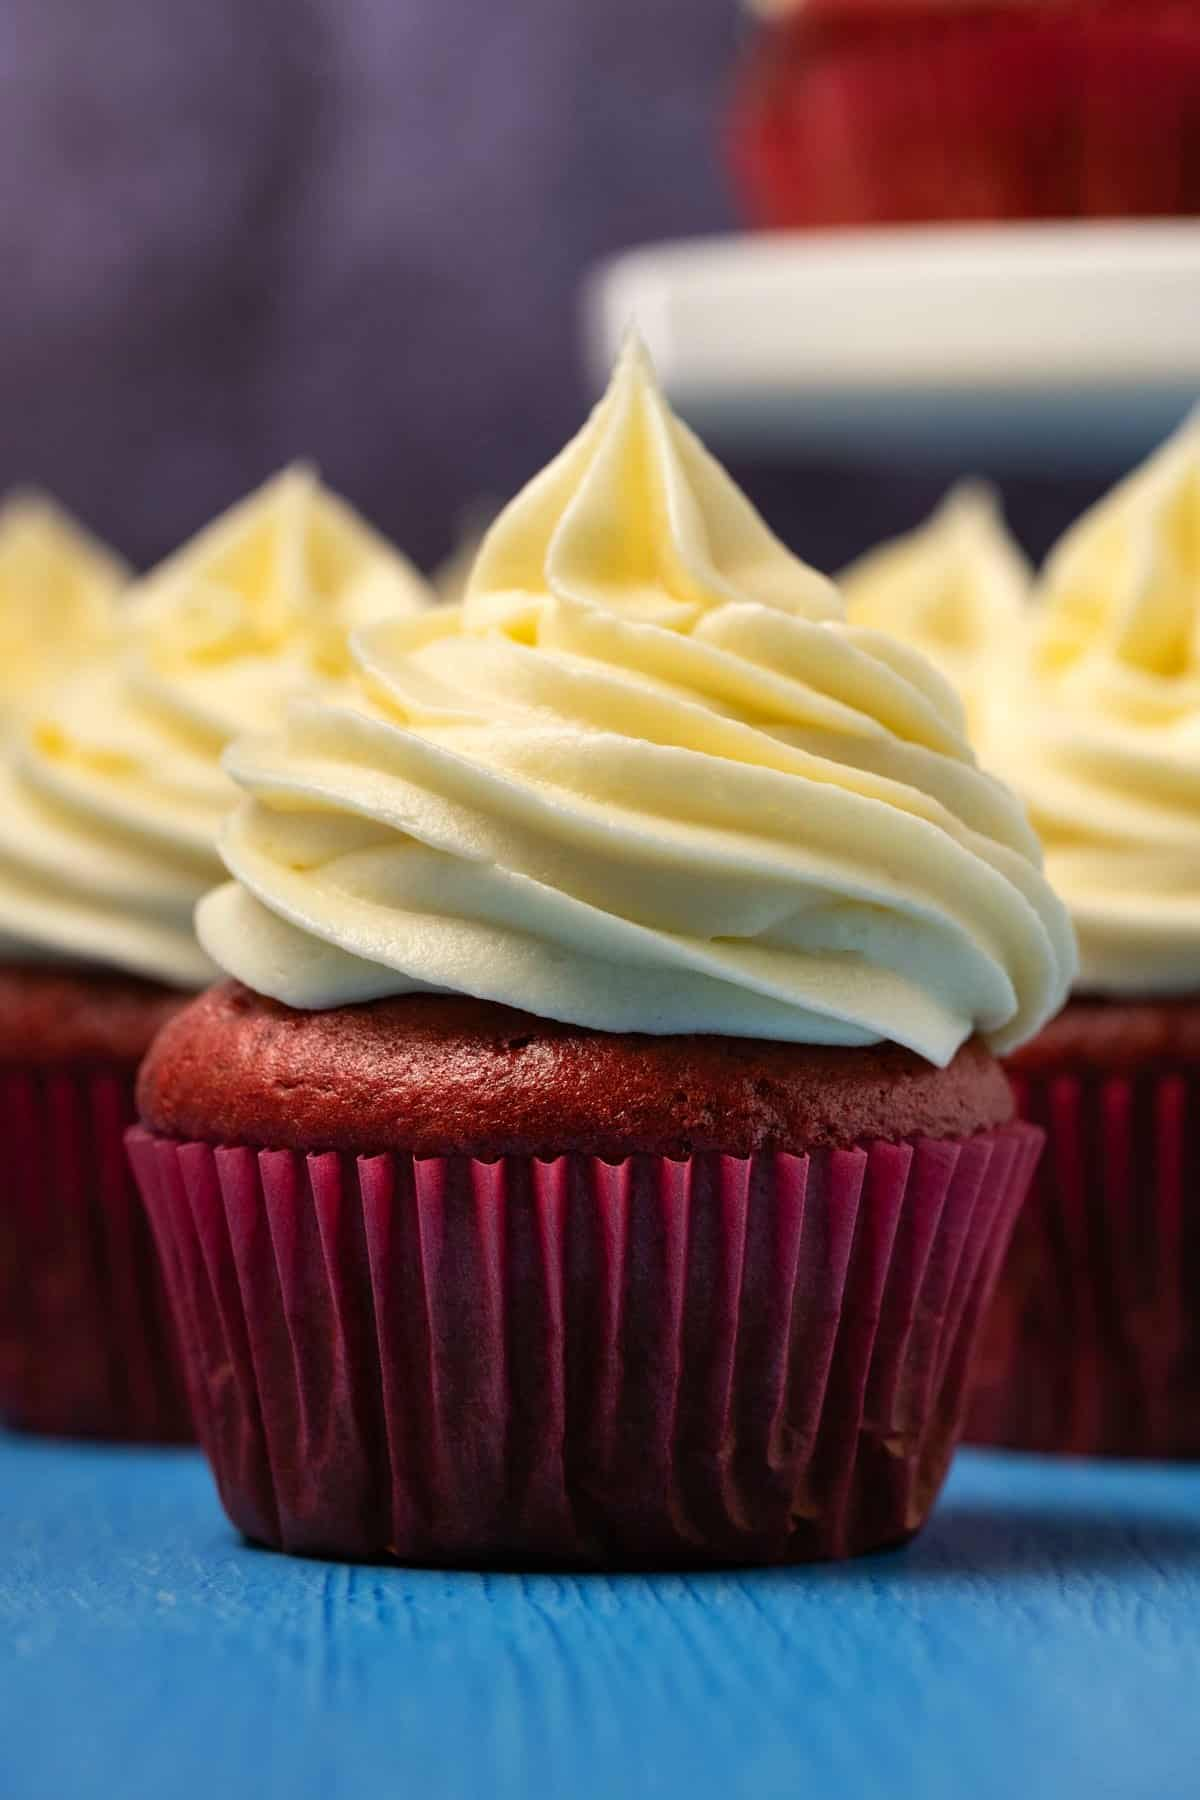 Red velvet cupcakes topped with cream cheese frosting.